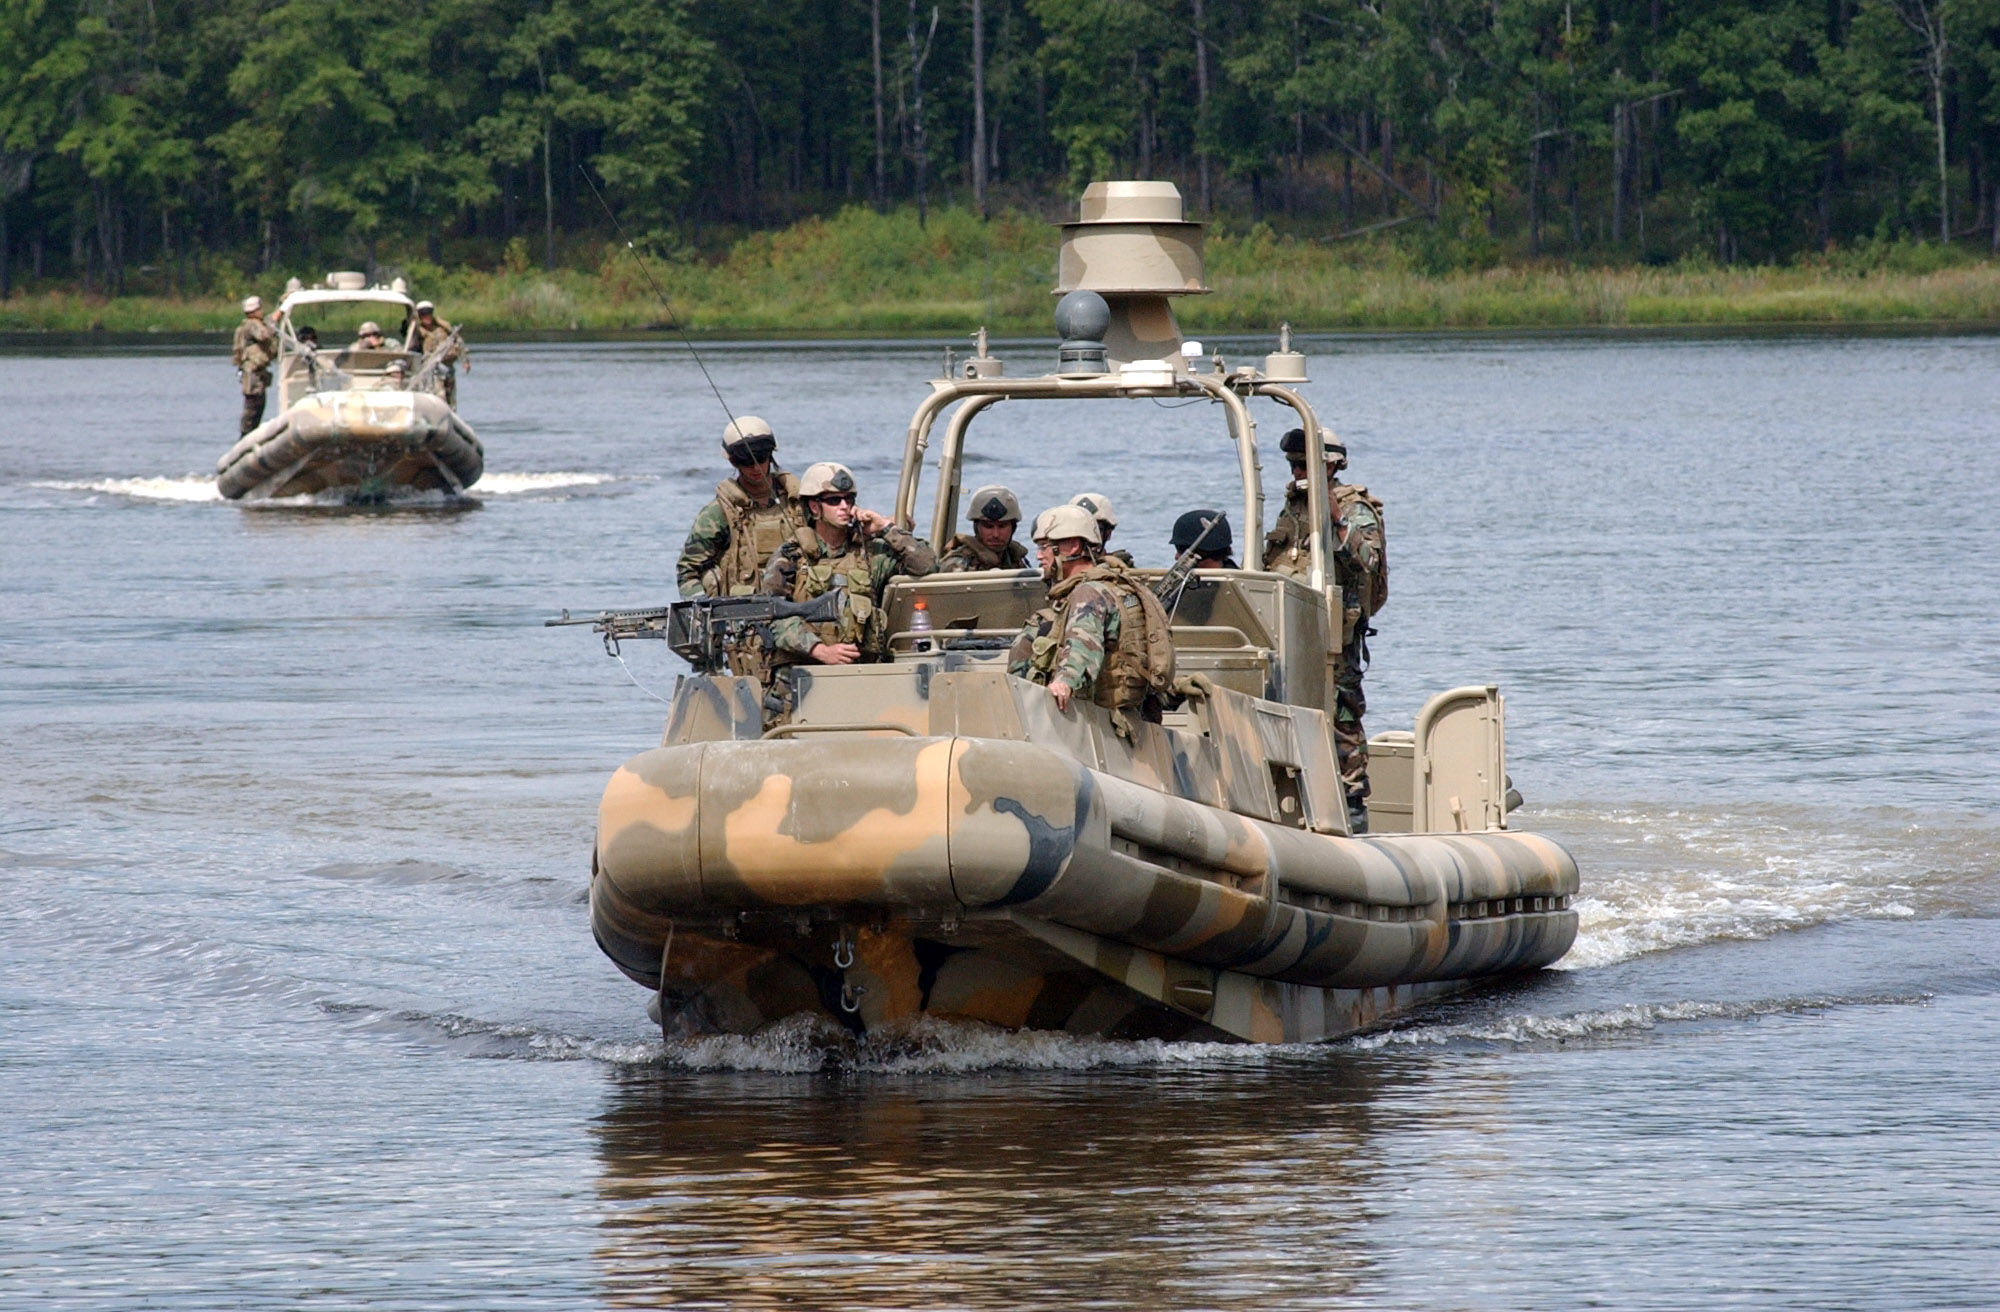 Navy River Patrol Boats http://commons.wikimedia.org/wiki/File:US_Navy_070909-N-9936B-024_A_pair_of_riverine_patrol_boats,_assigned_to_Riverine_Squadron_(RIVERON)_2,_move_across_the_waterborne_range_at_Fort_Pickett.jpg